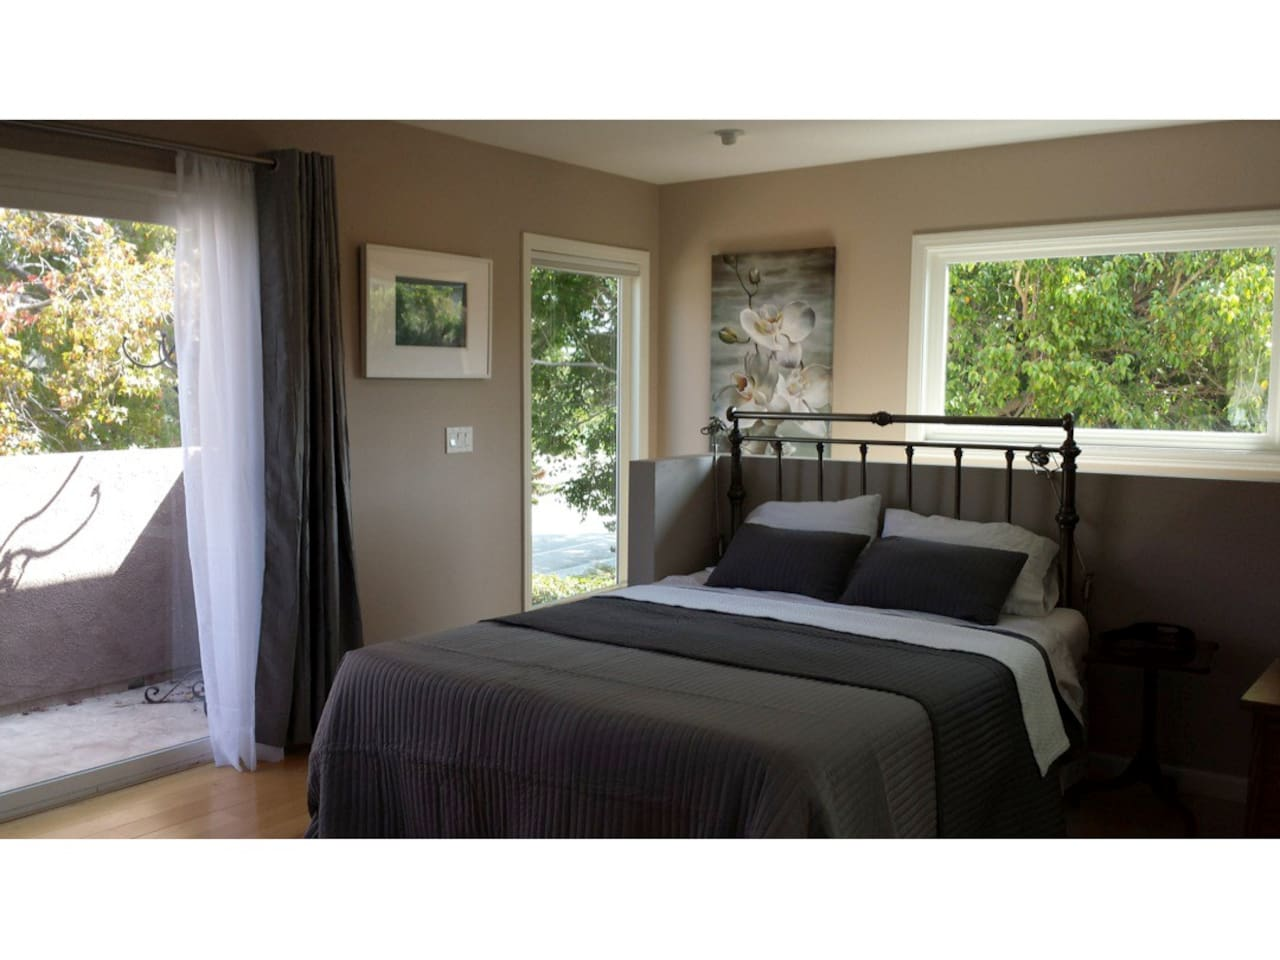 Luxury bedding on a queen size memory foam tempurpedic mattress with complete privacy out every window.